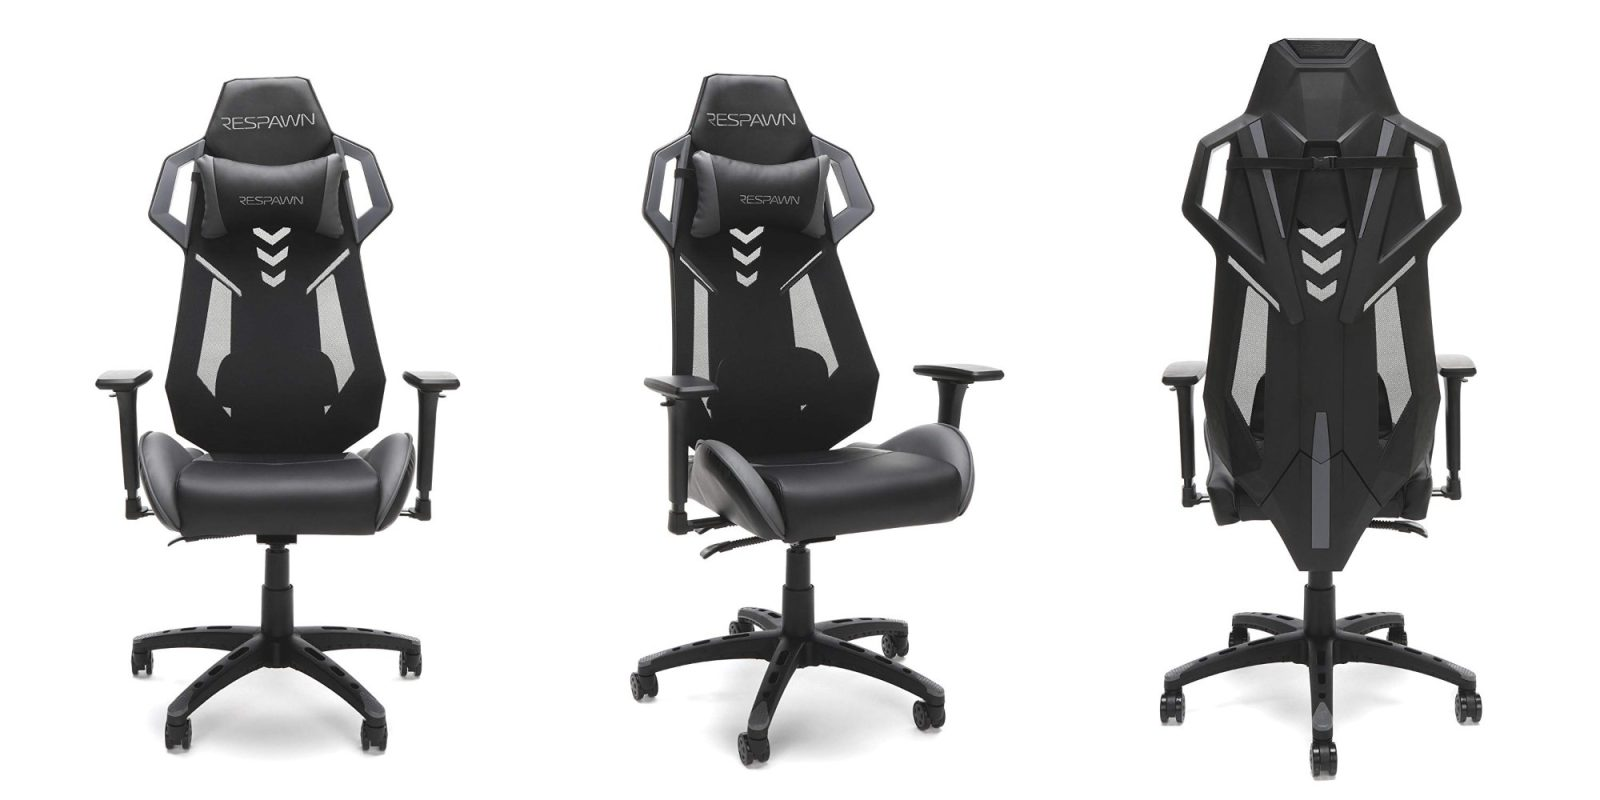 Recline in Respawn's Gaming Chair for $150 at Amazon (Reg. $195+)